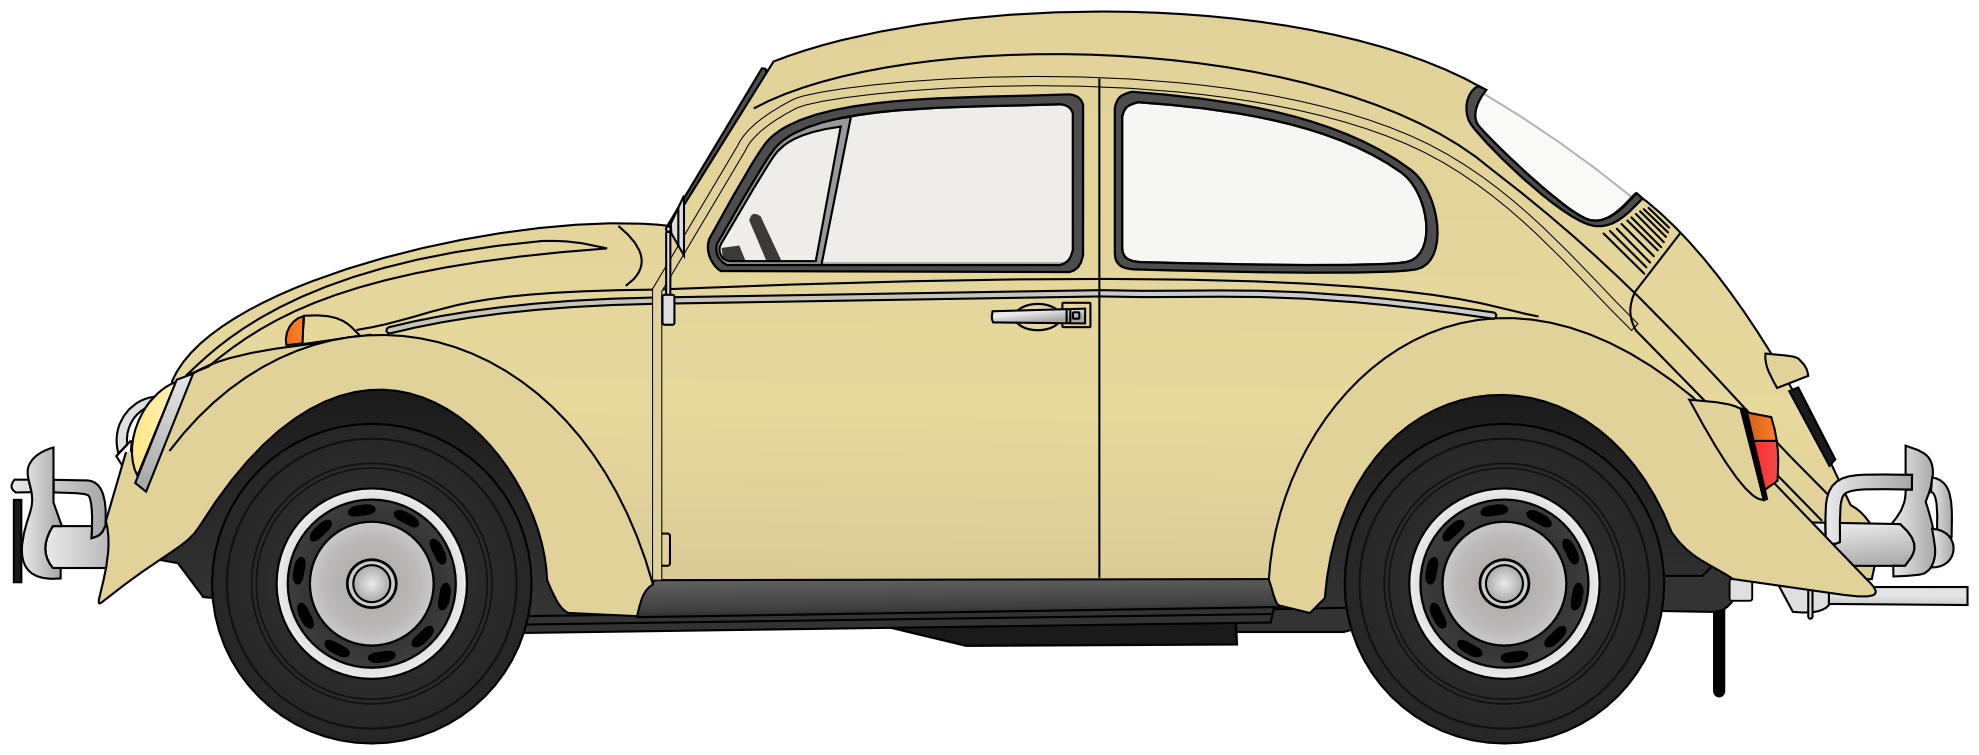 Bug car clipart png royalty free library 28+ Collection of Vw Bug Clipart   High quality, free cliparts ... png royalty free library